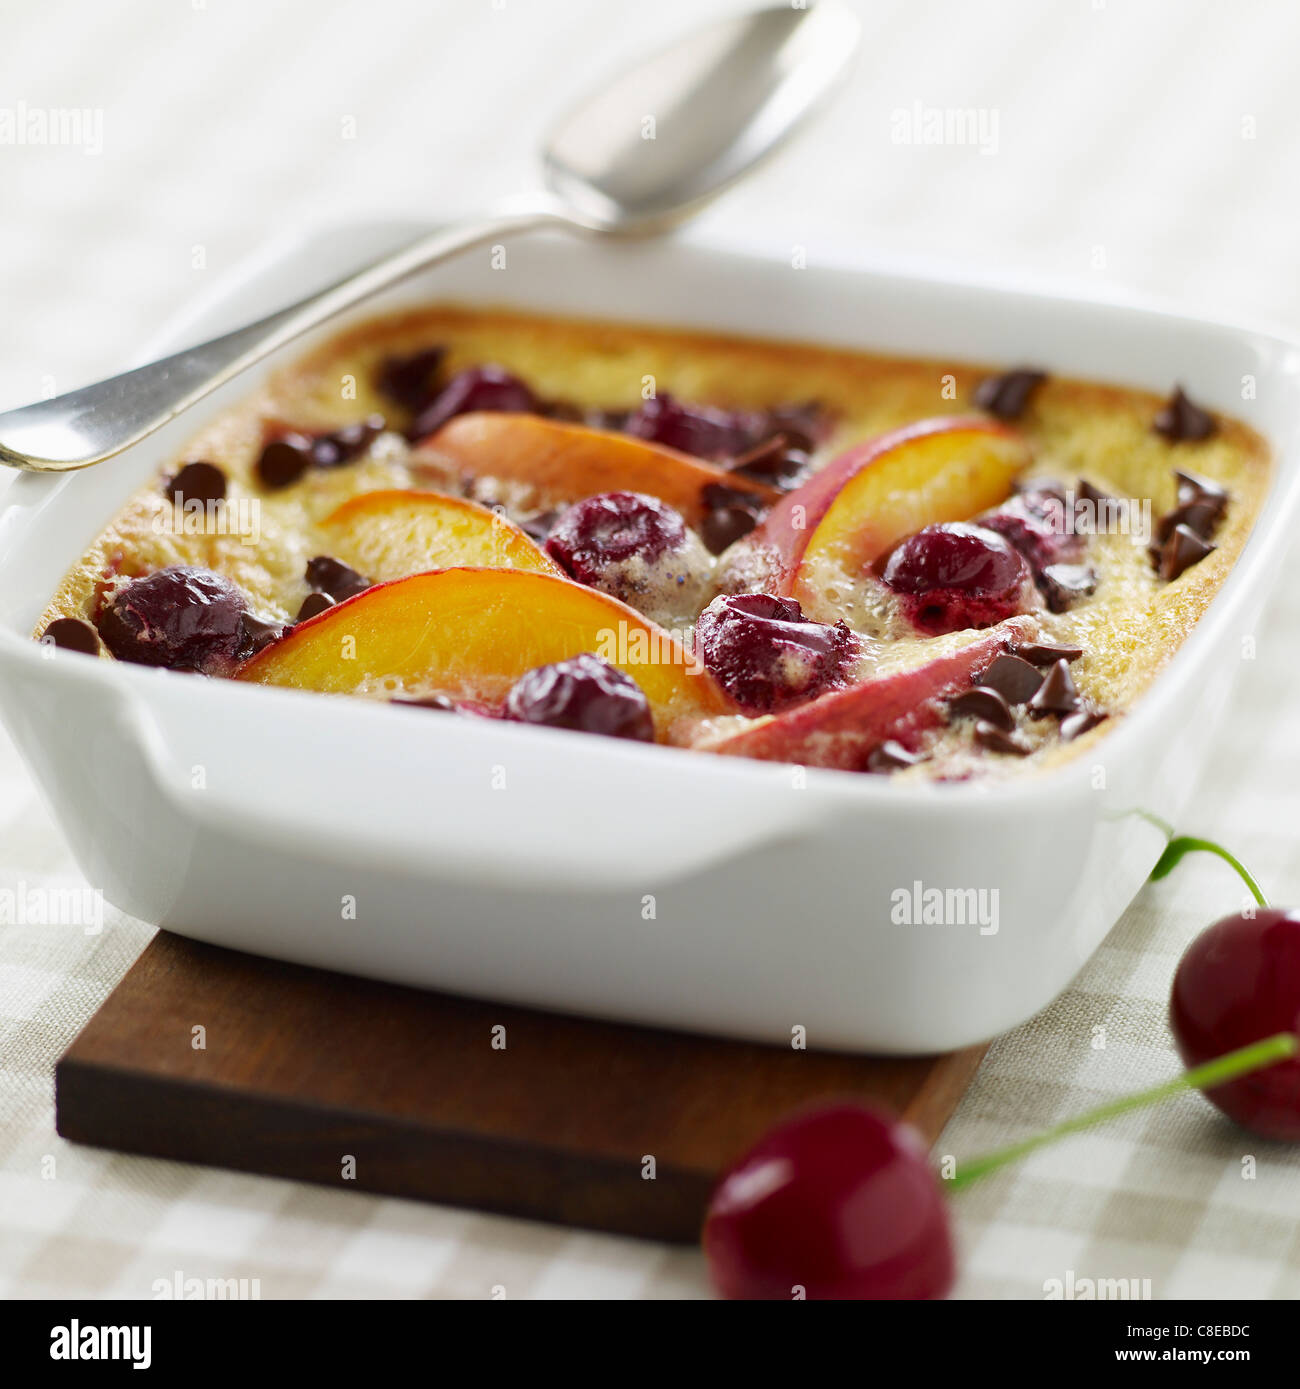 Nectarine,cherry and chocolate chip batter pudding - Stock Image